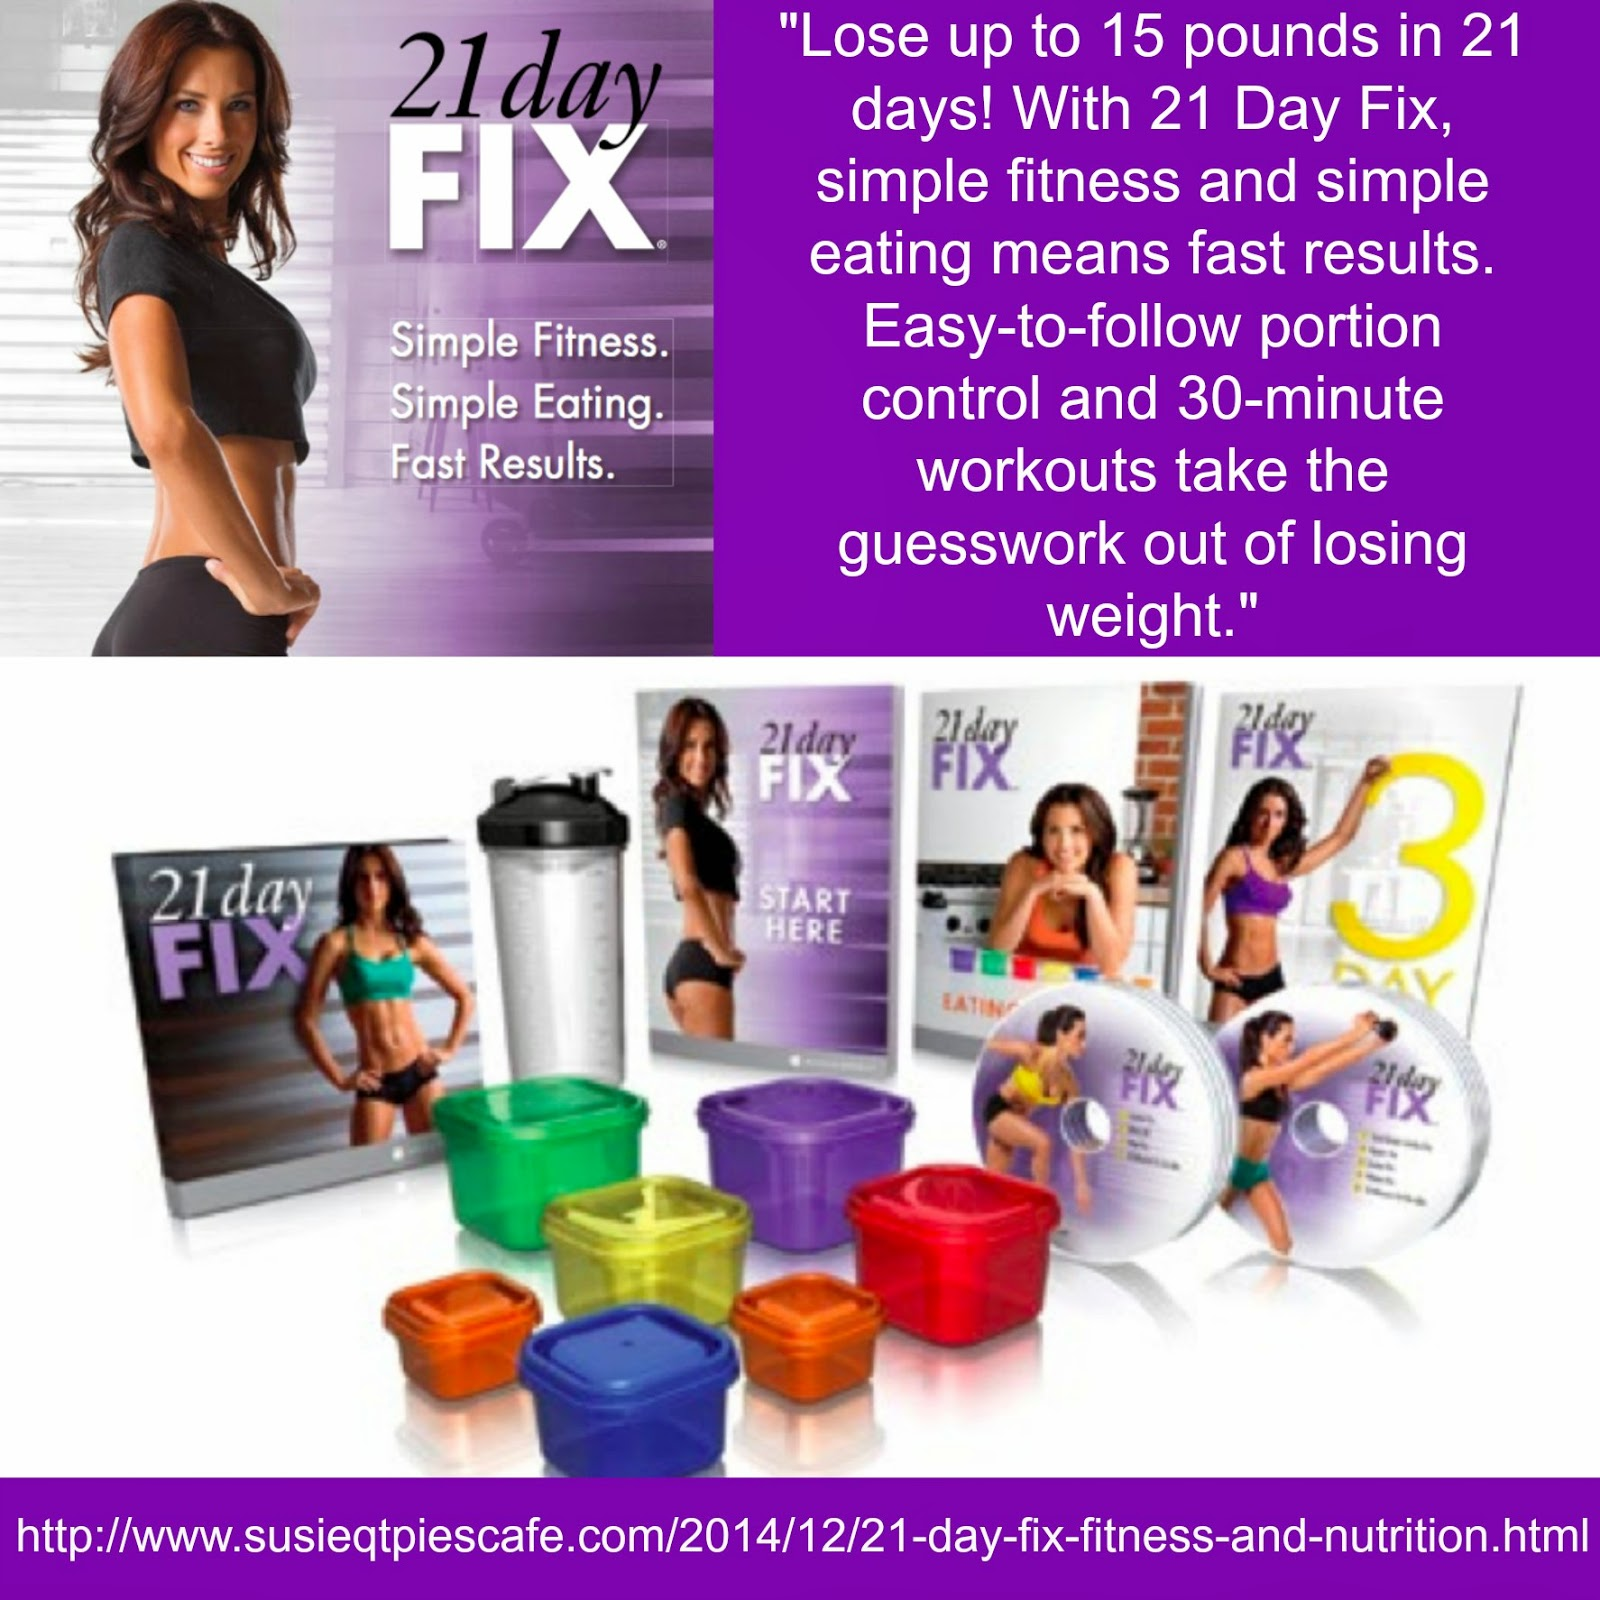 Susieqtpies Cafe Why All The Buzz On The 21 Day Fix